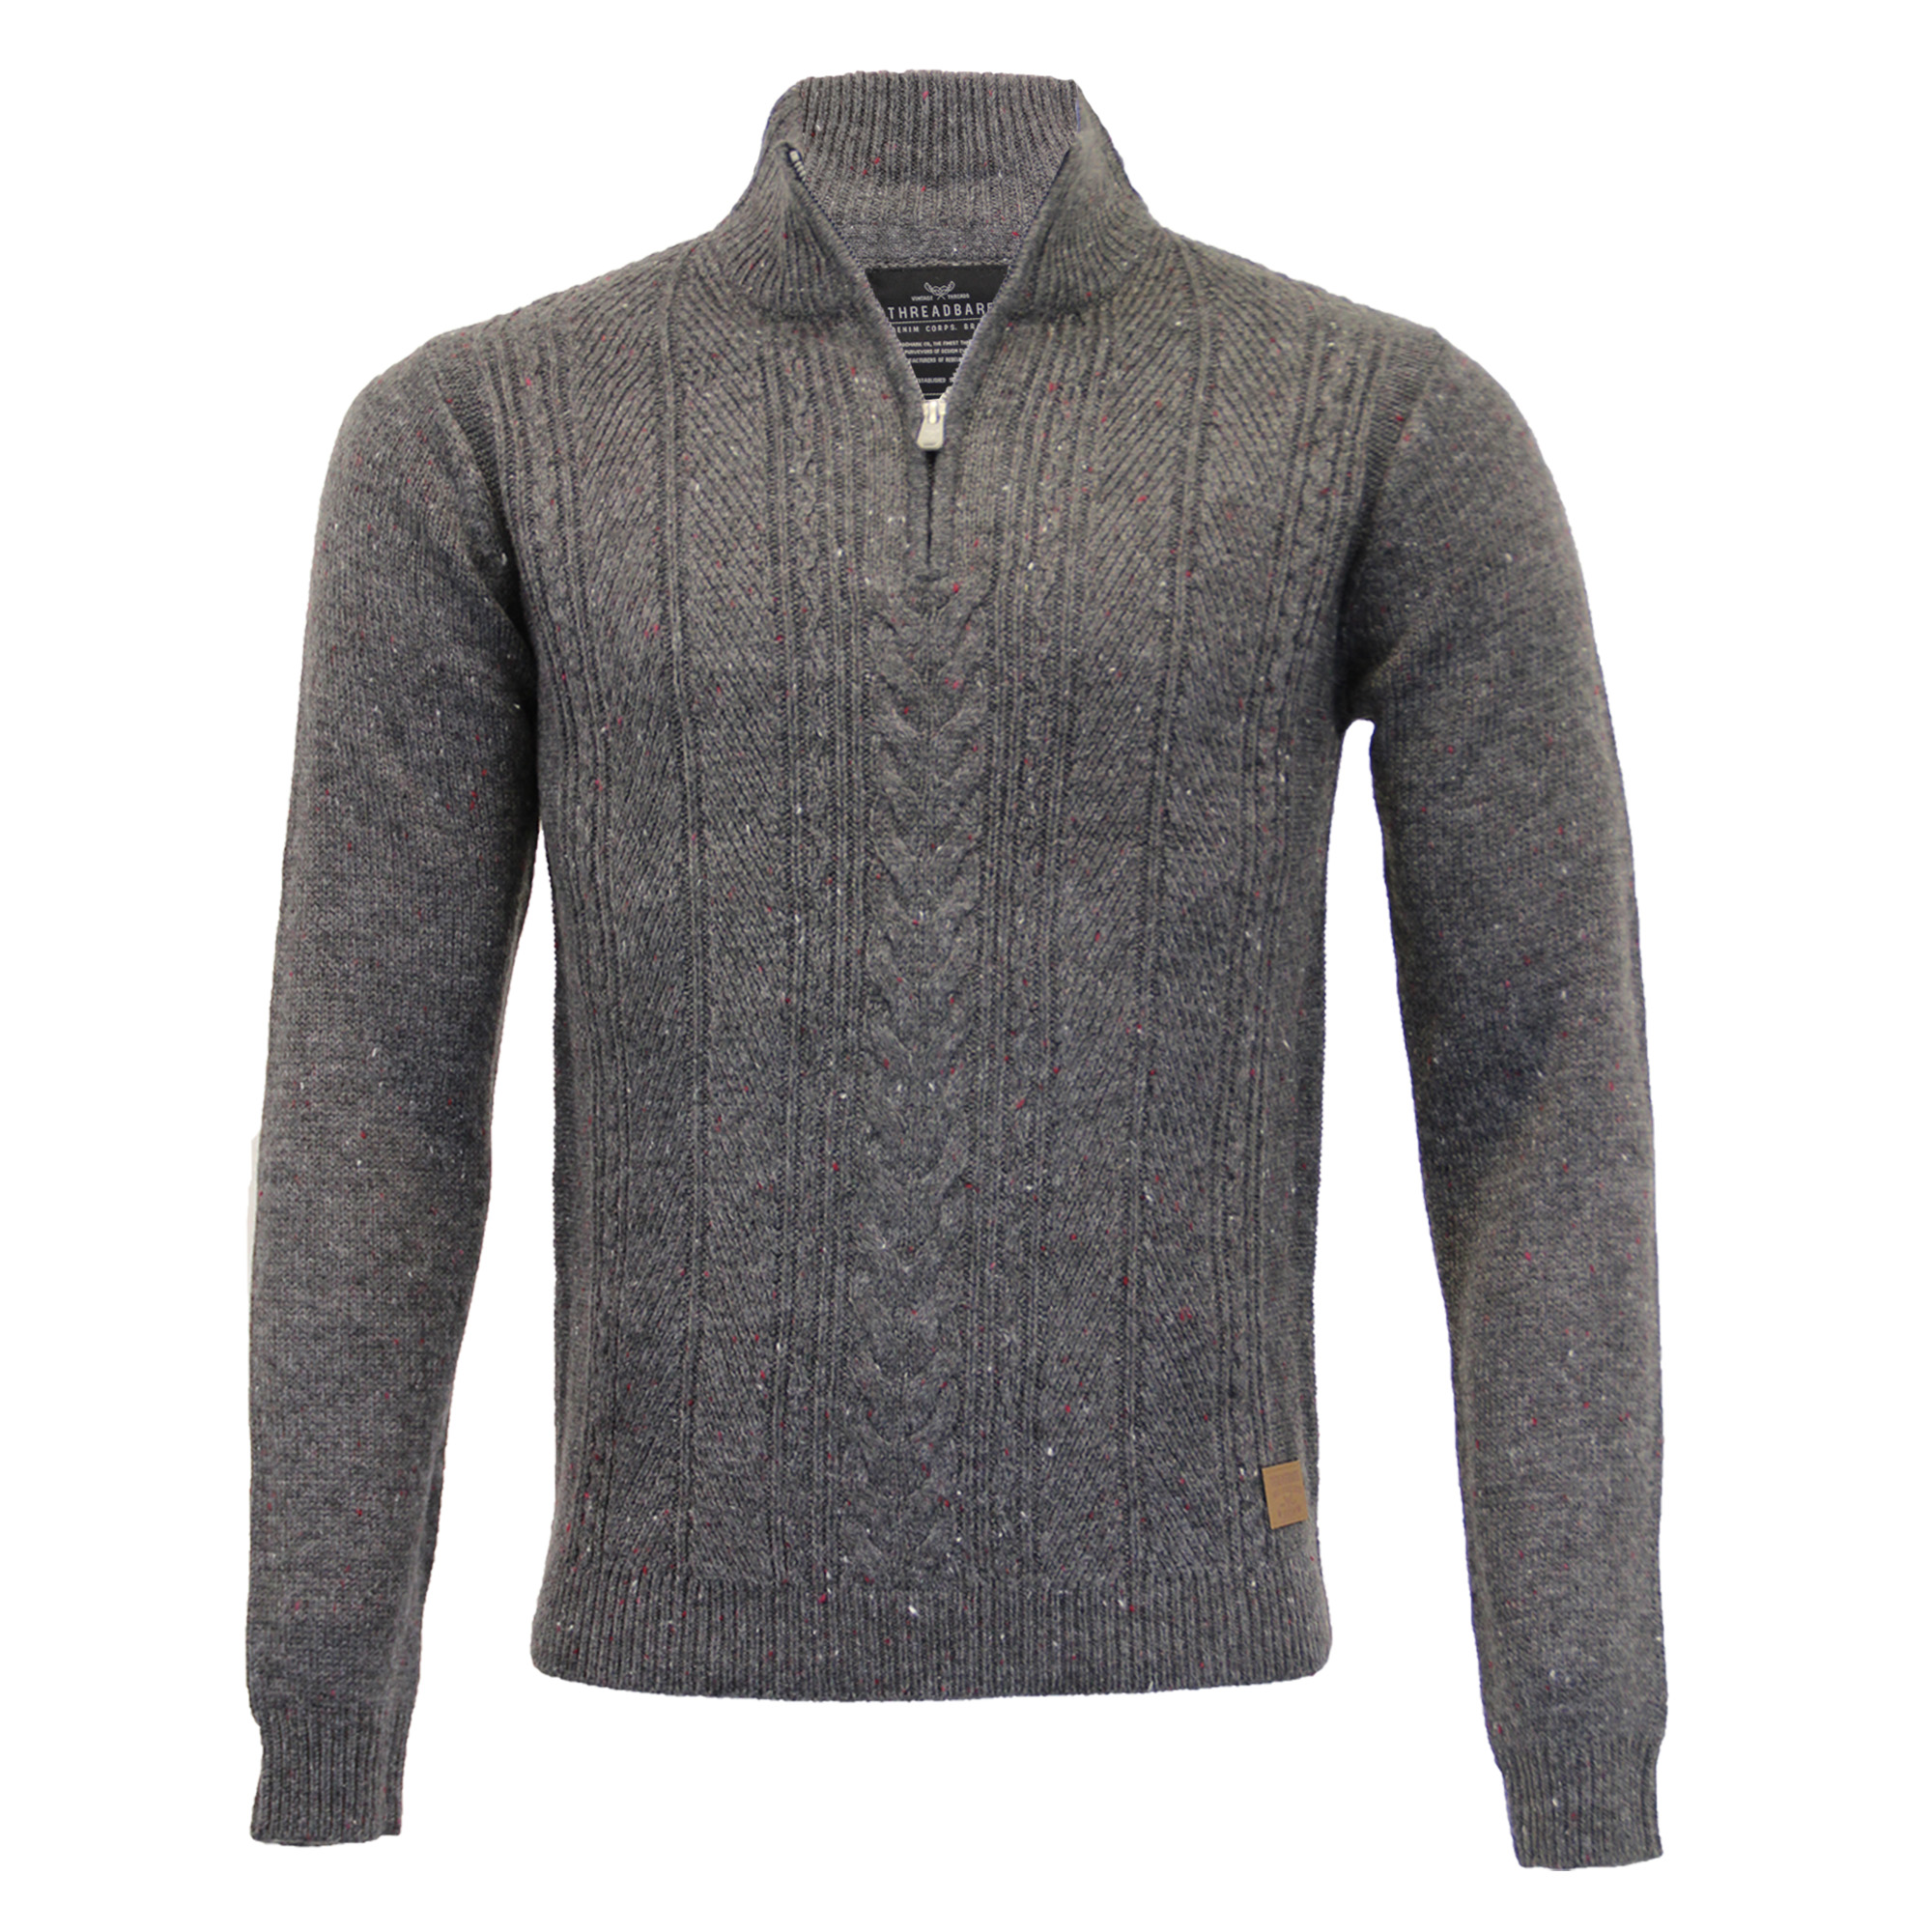 Mens-Wool-Mix-Jumper-Threadbare-Knitted-Sweater-Pullover-Top-Chunky-Zip-Winter thumbnail 11